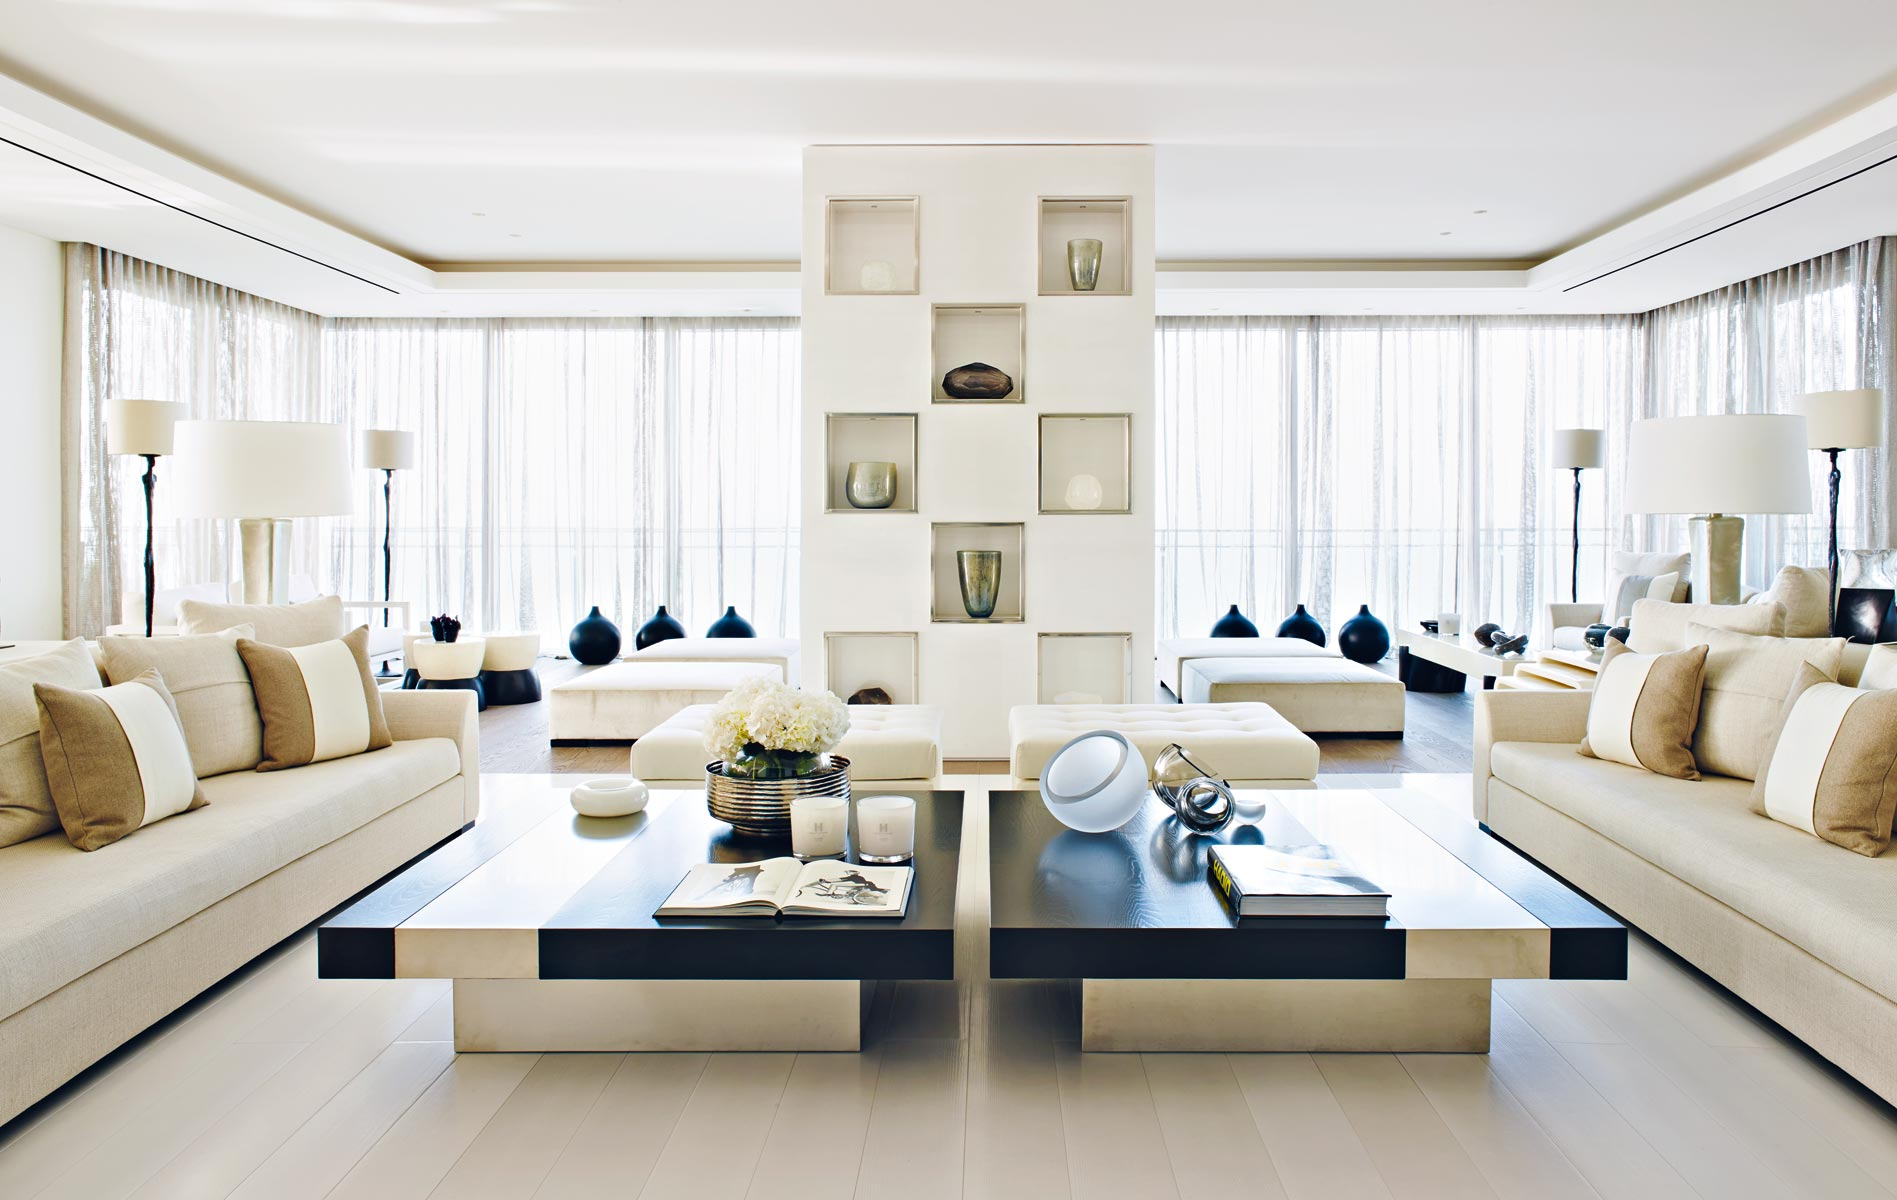 Top 10 kelly hoppen design ideas - Home interiors living room ...